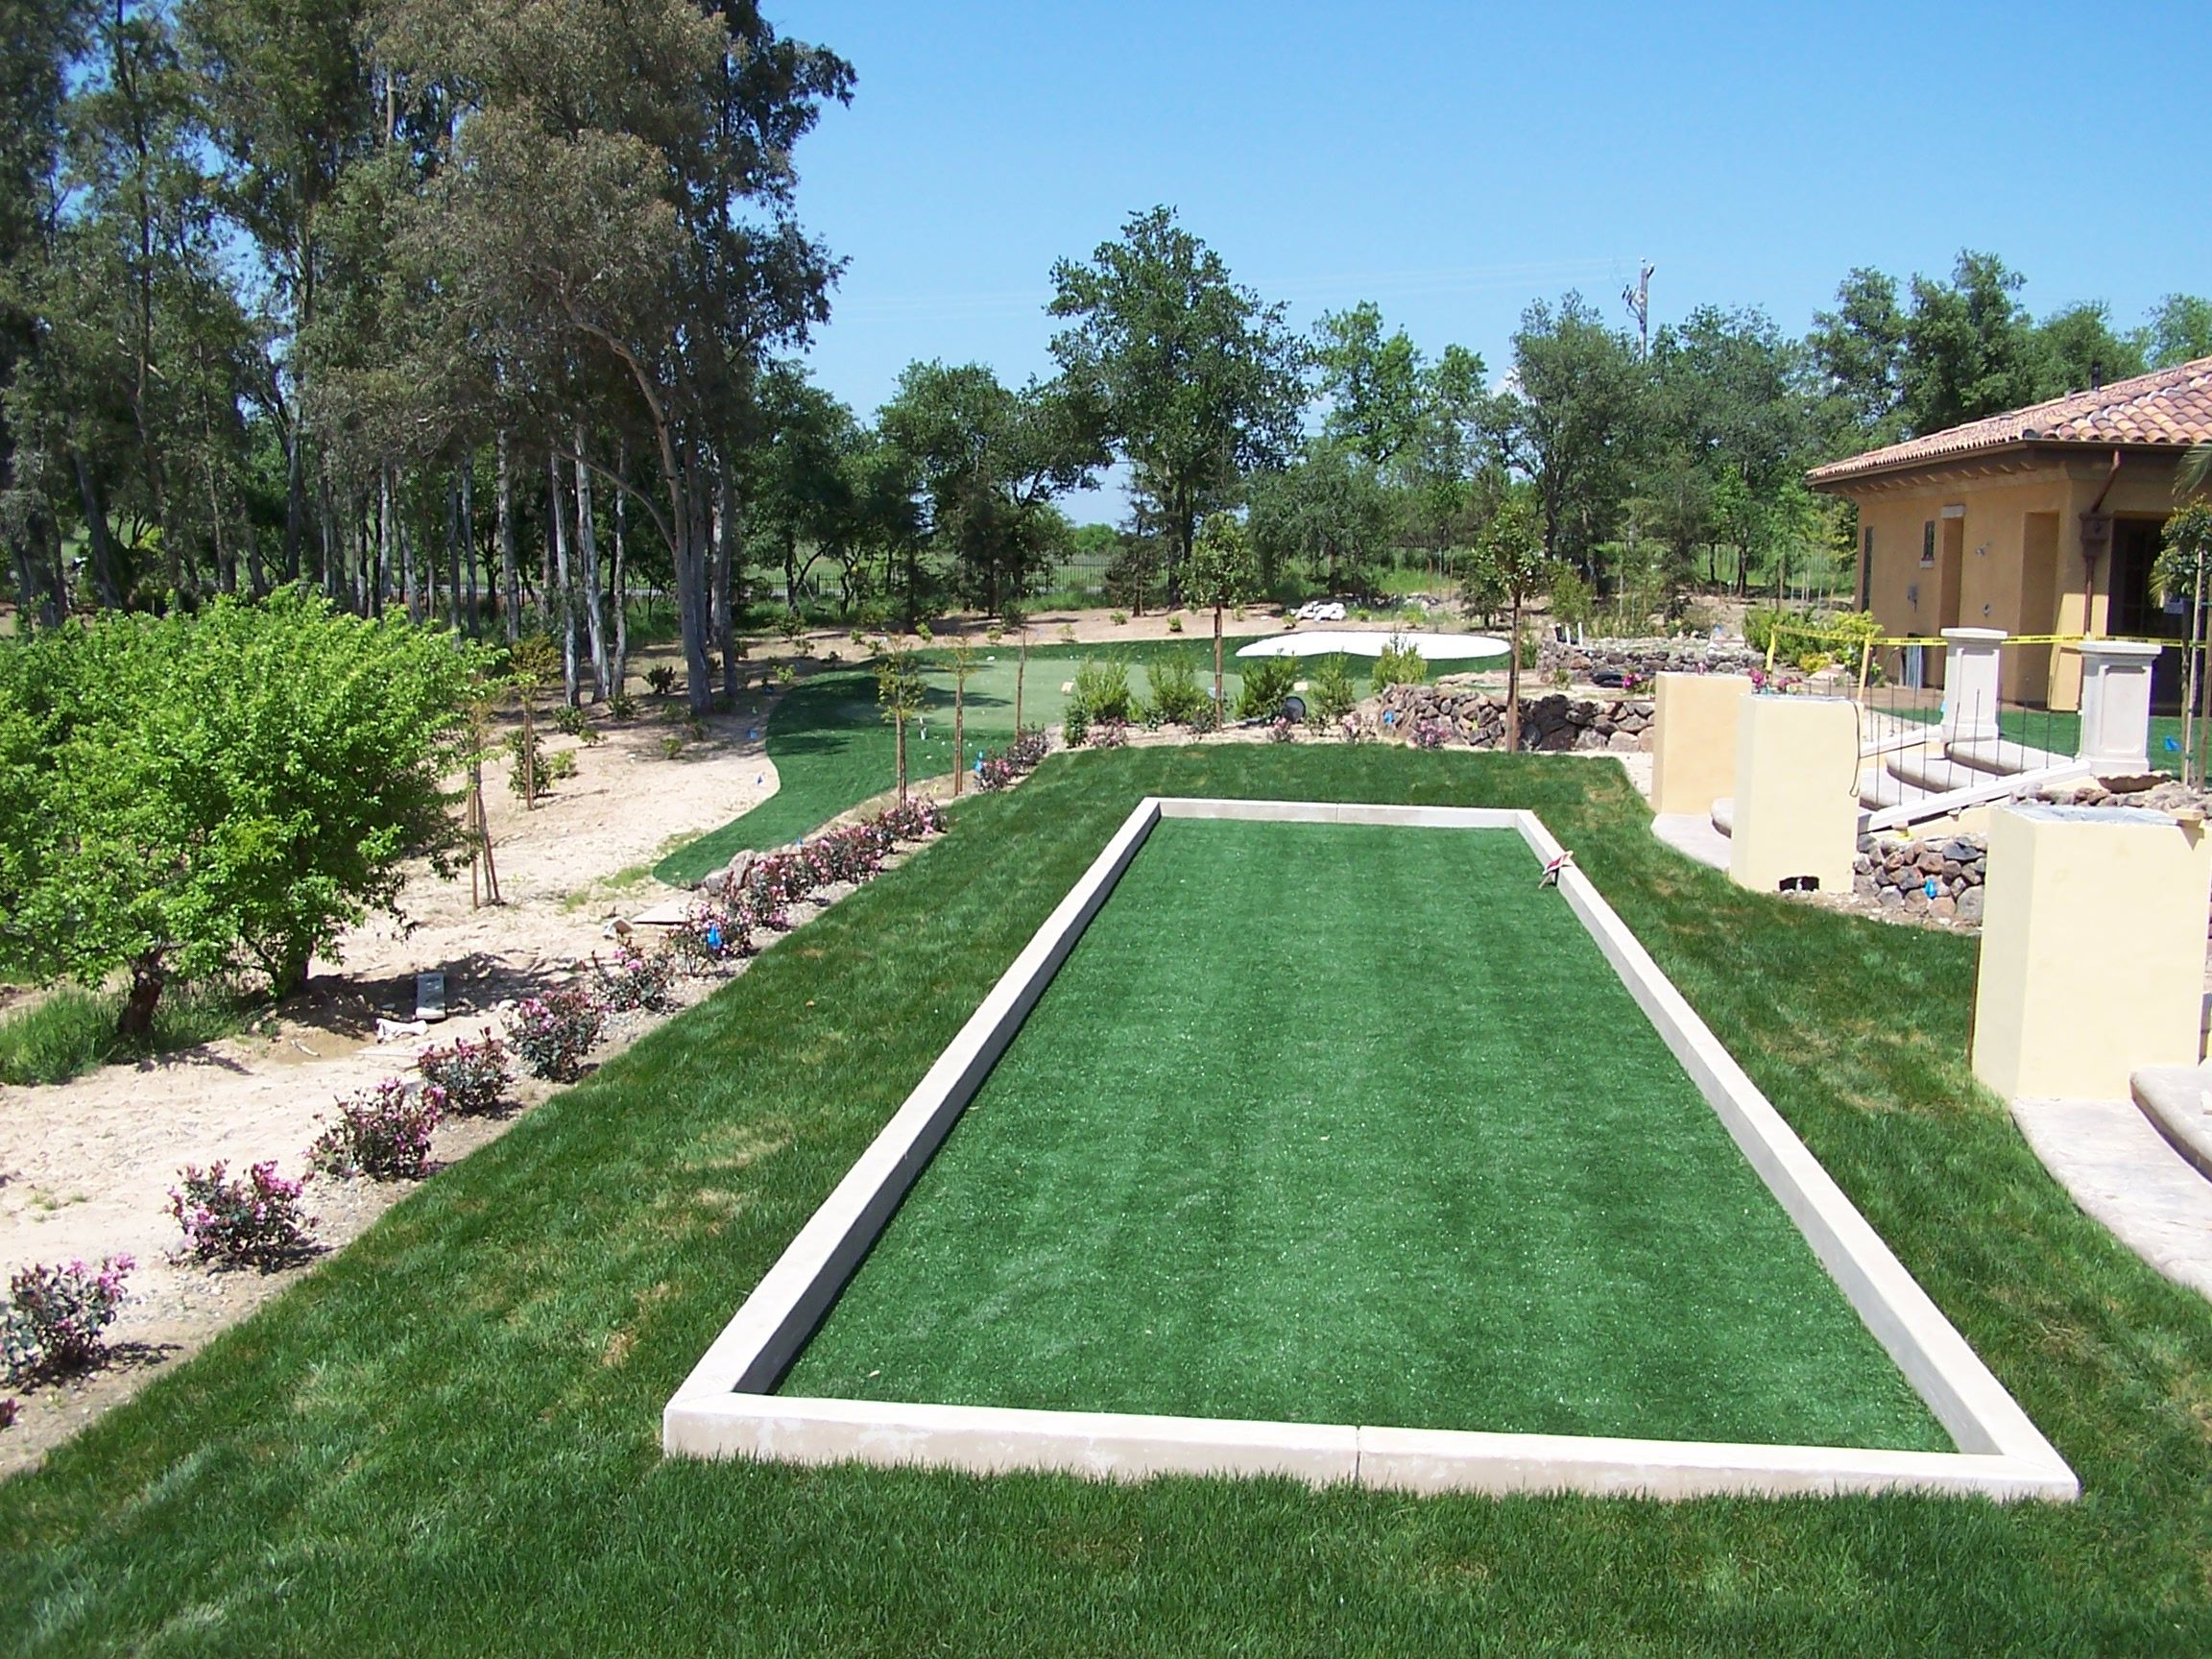 Bocce Court at Home | bocce-court-1 | bocce ideas | Pinterest ...